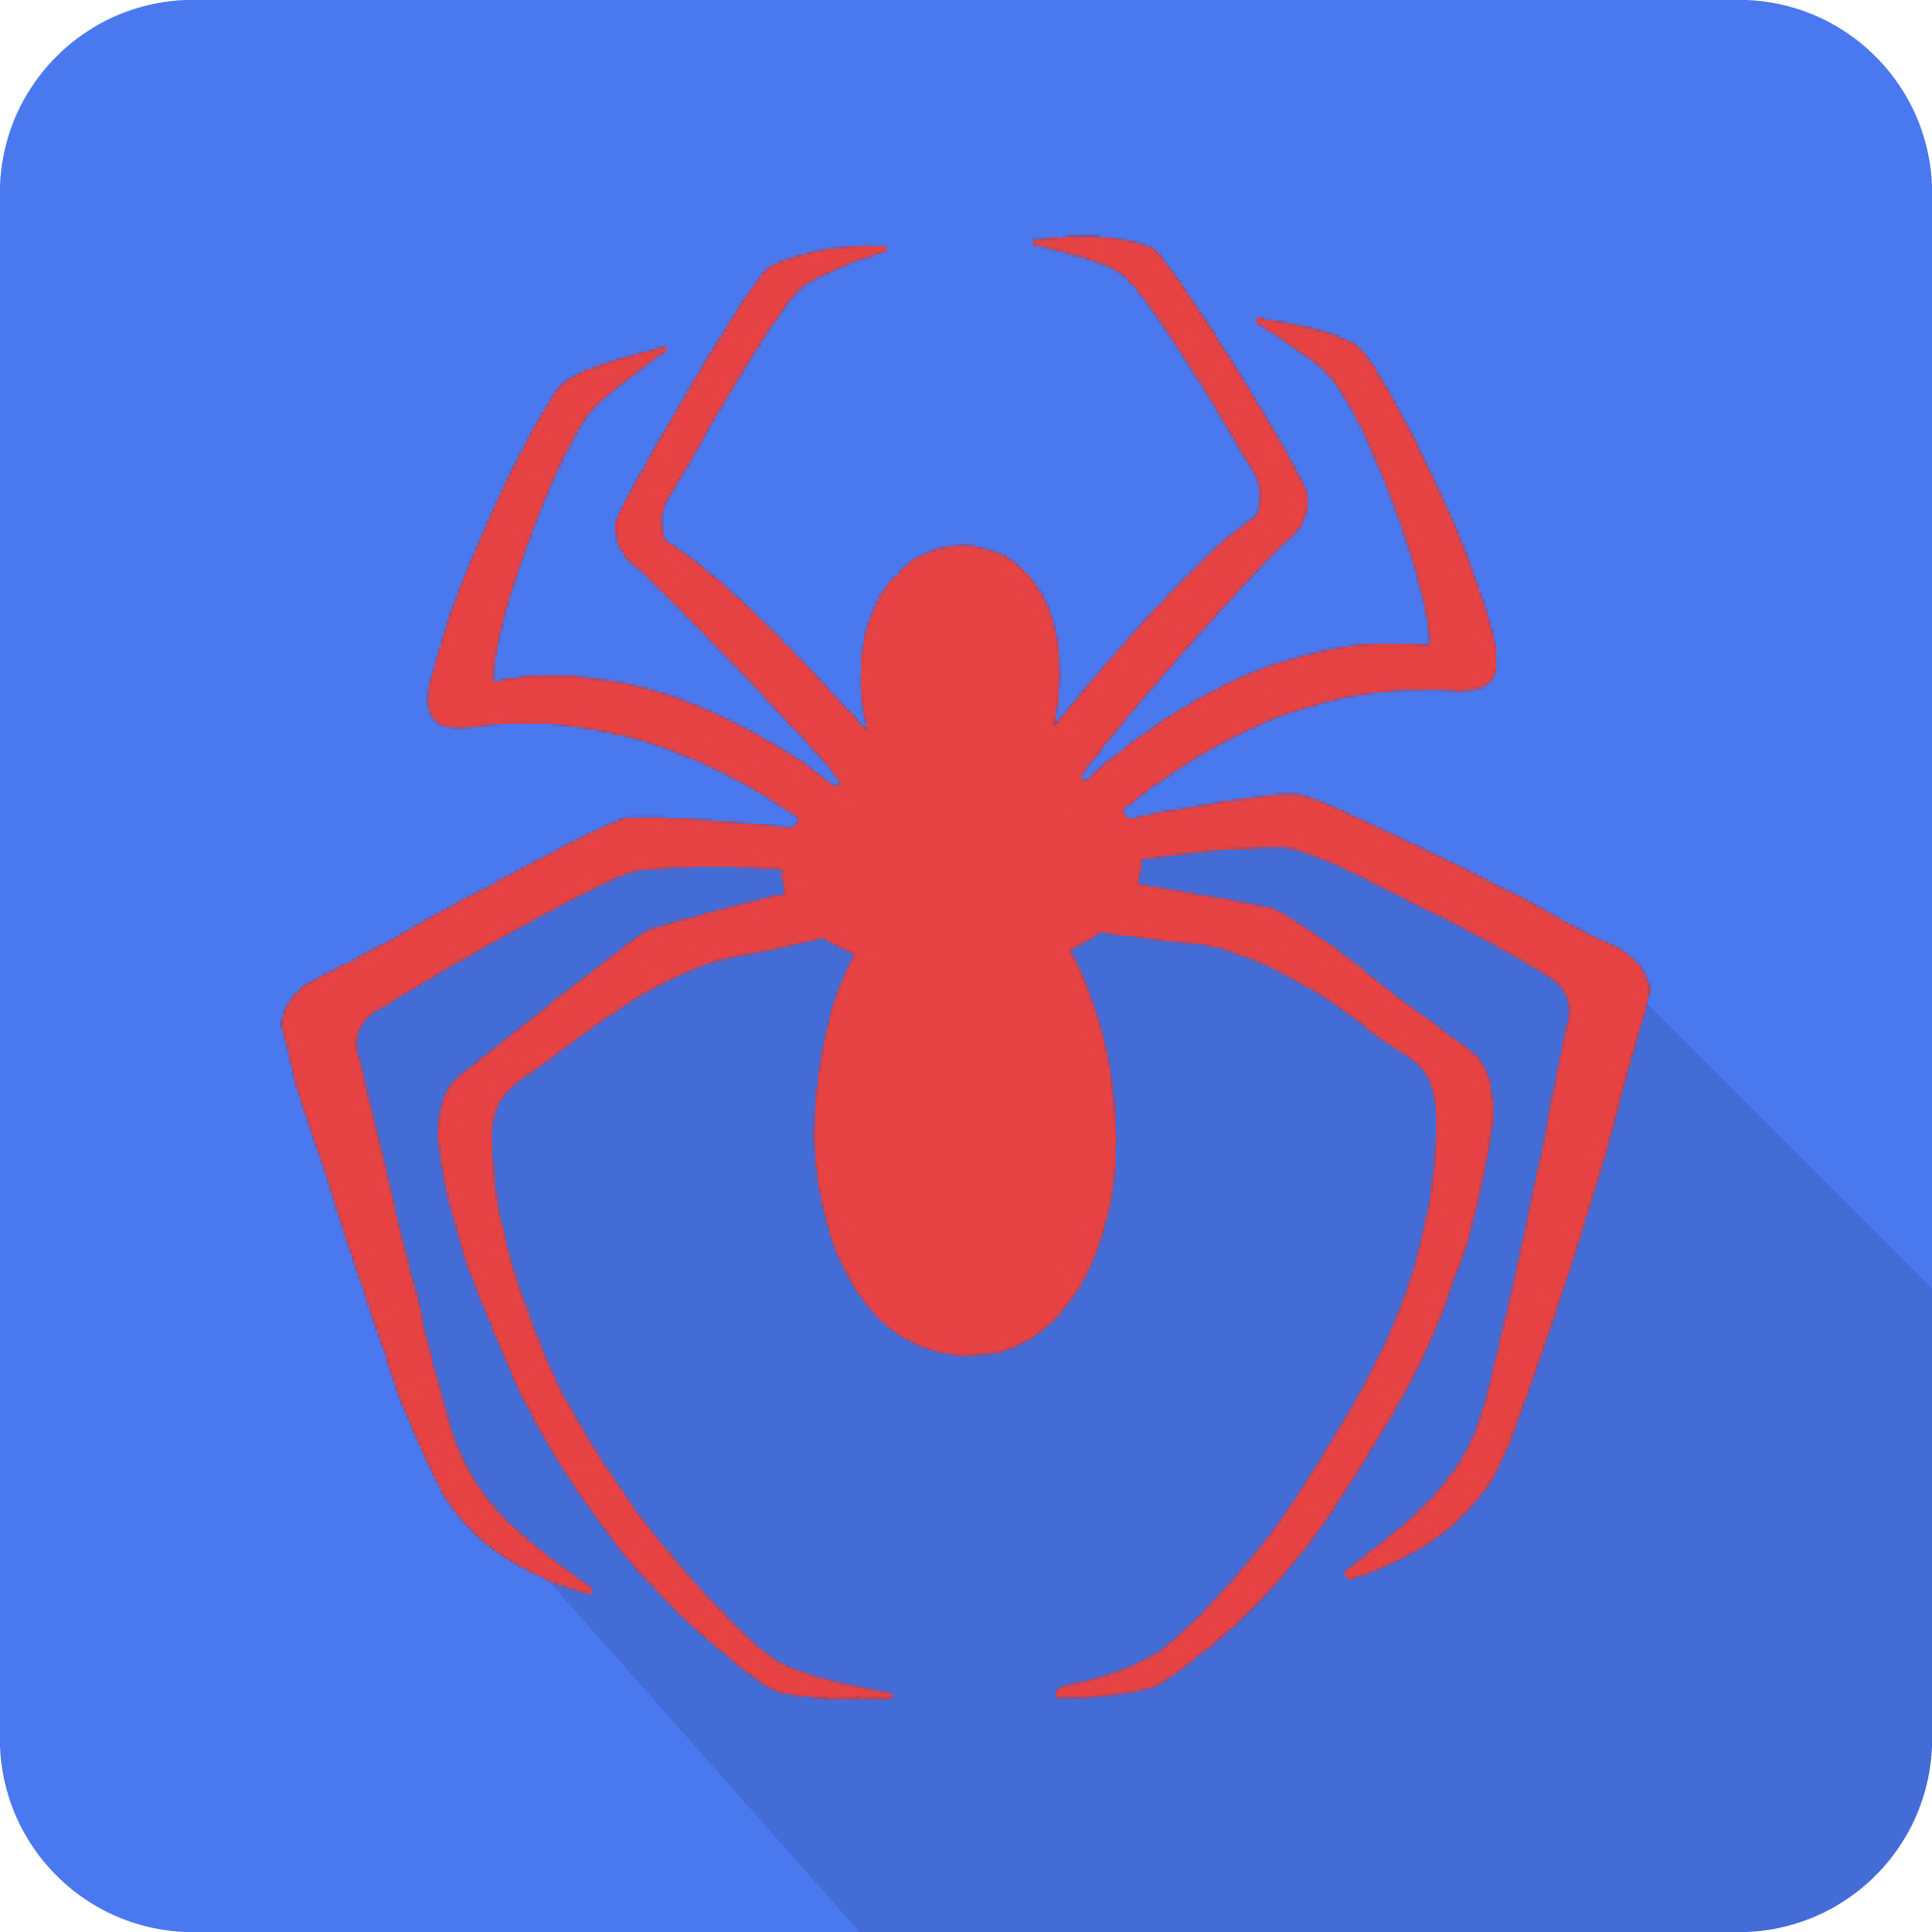 Spider-Man Material Design Logo by XxHarutxX on DeviantArt